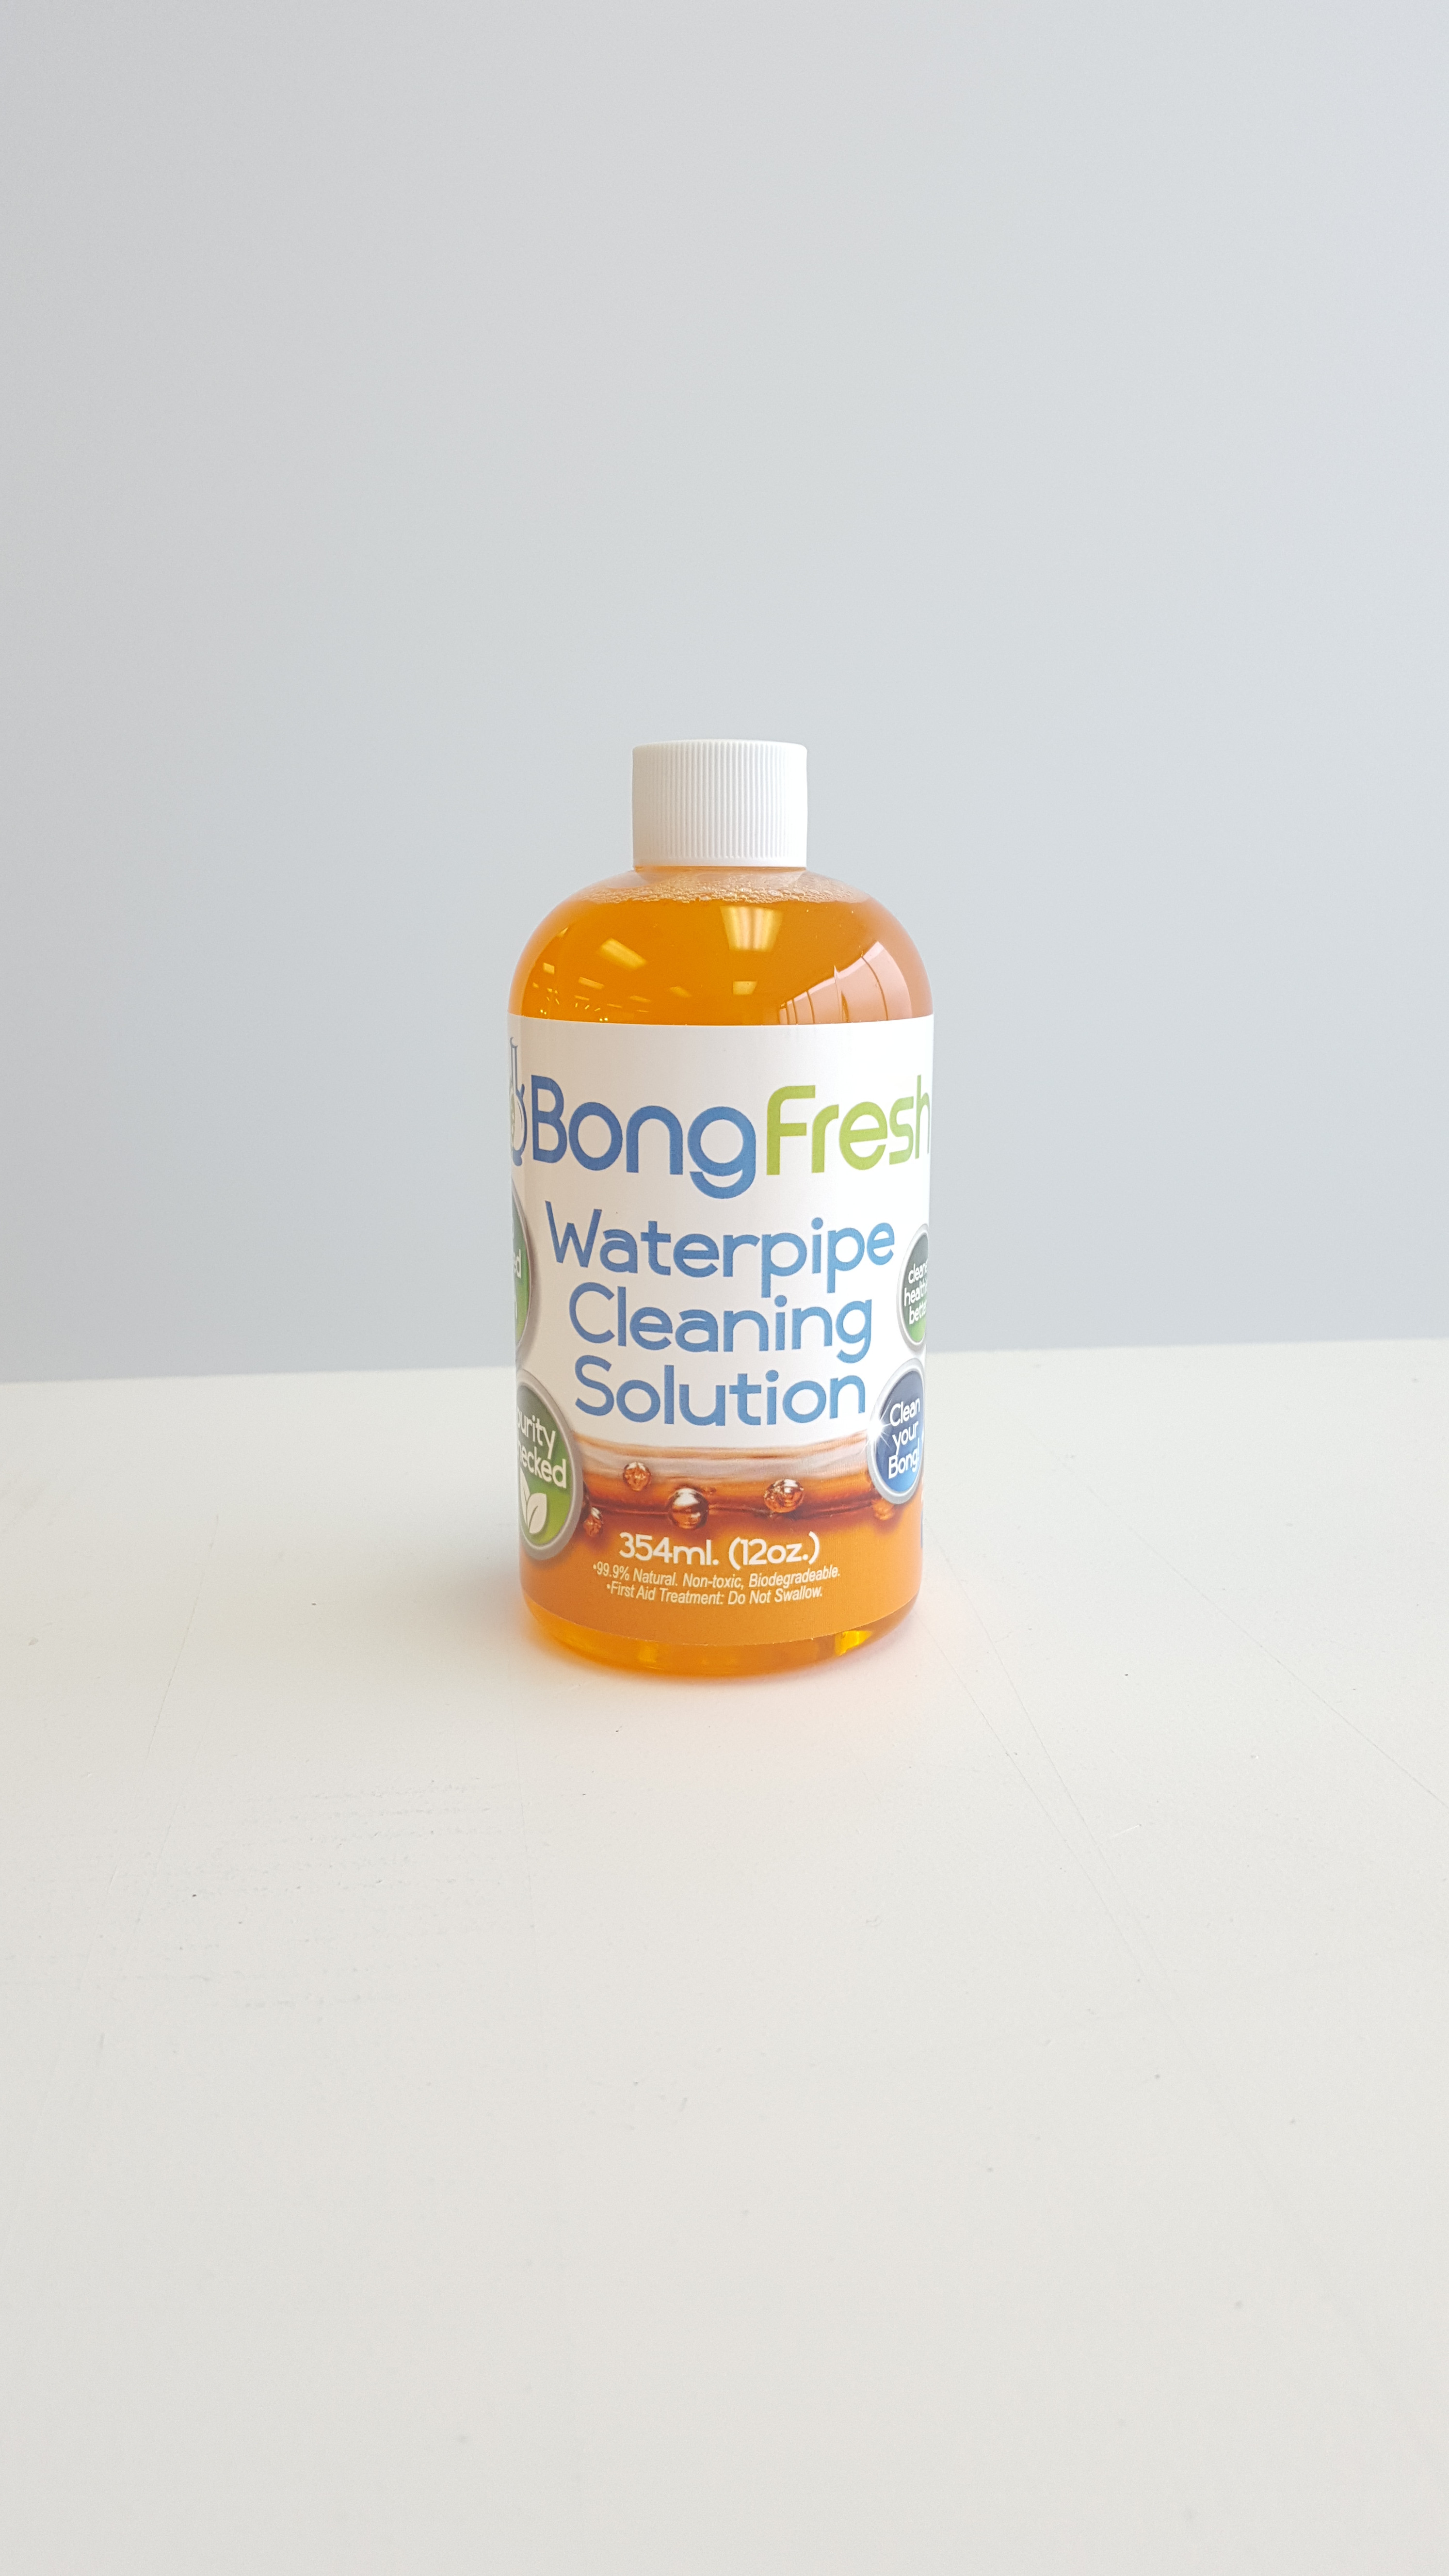 Uncategorized Homemade Bong Cleaning Solution bong fresh the most effective quartz cleaner bongfresh waterpipe cleaning solution 12oz